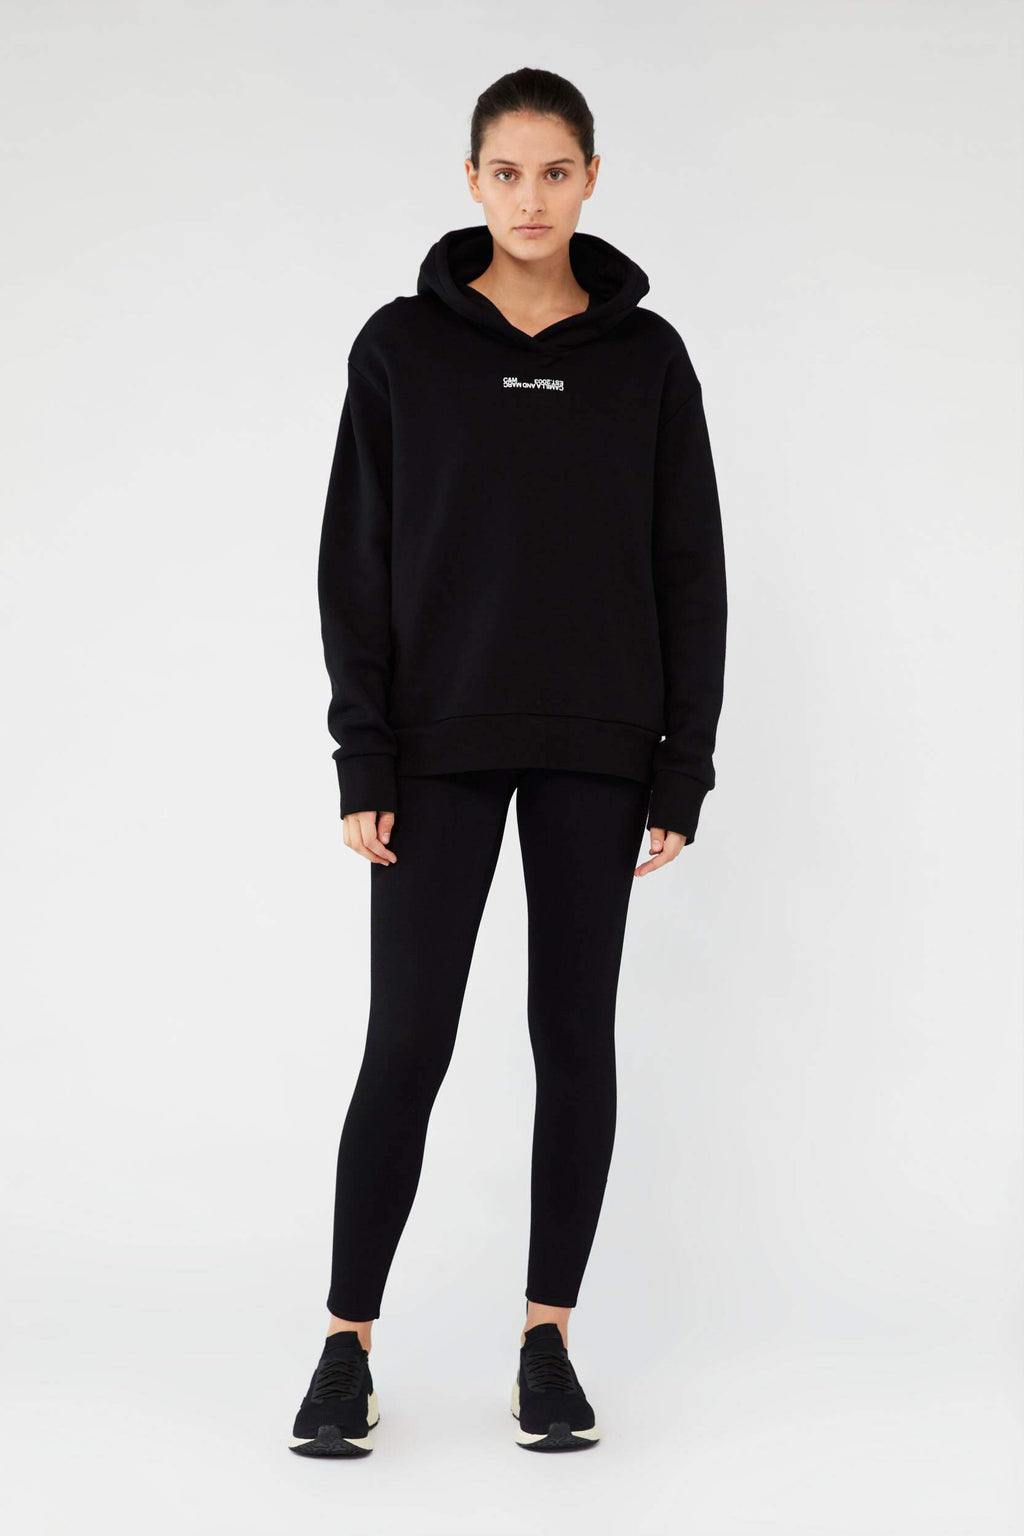 Camilla And Marc / Denver Hoodie / Black w White